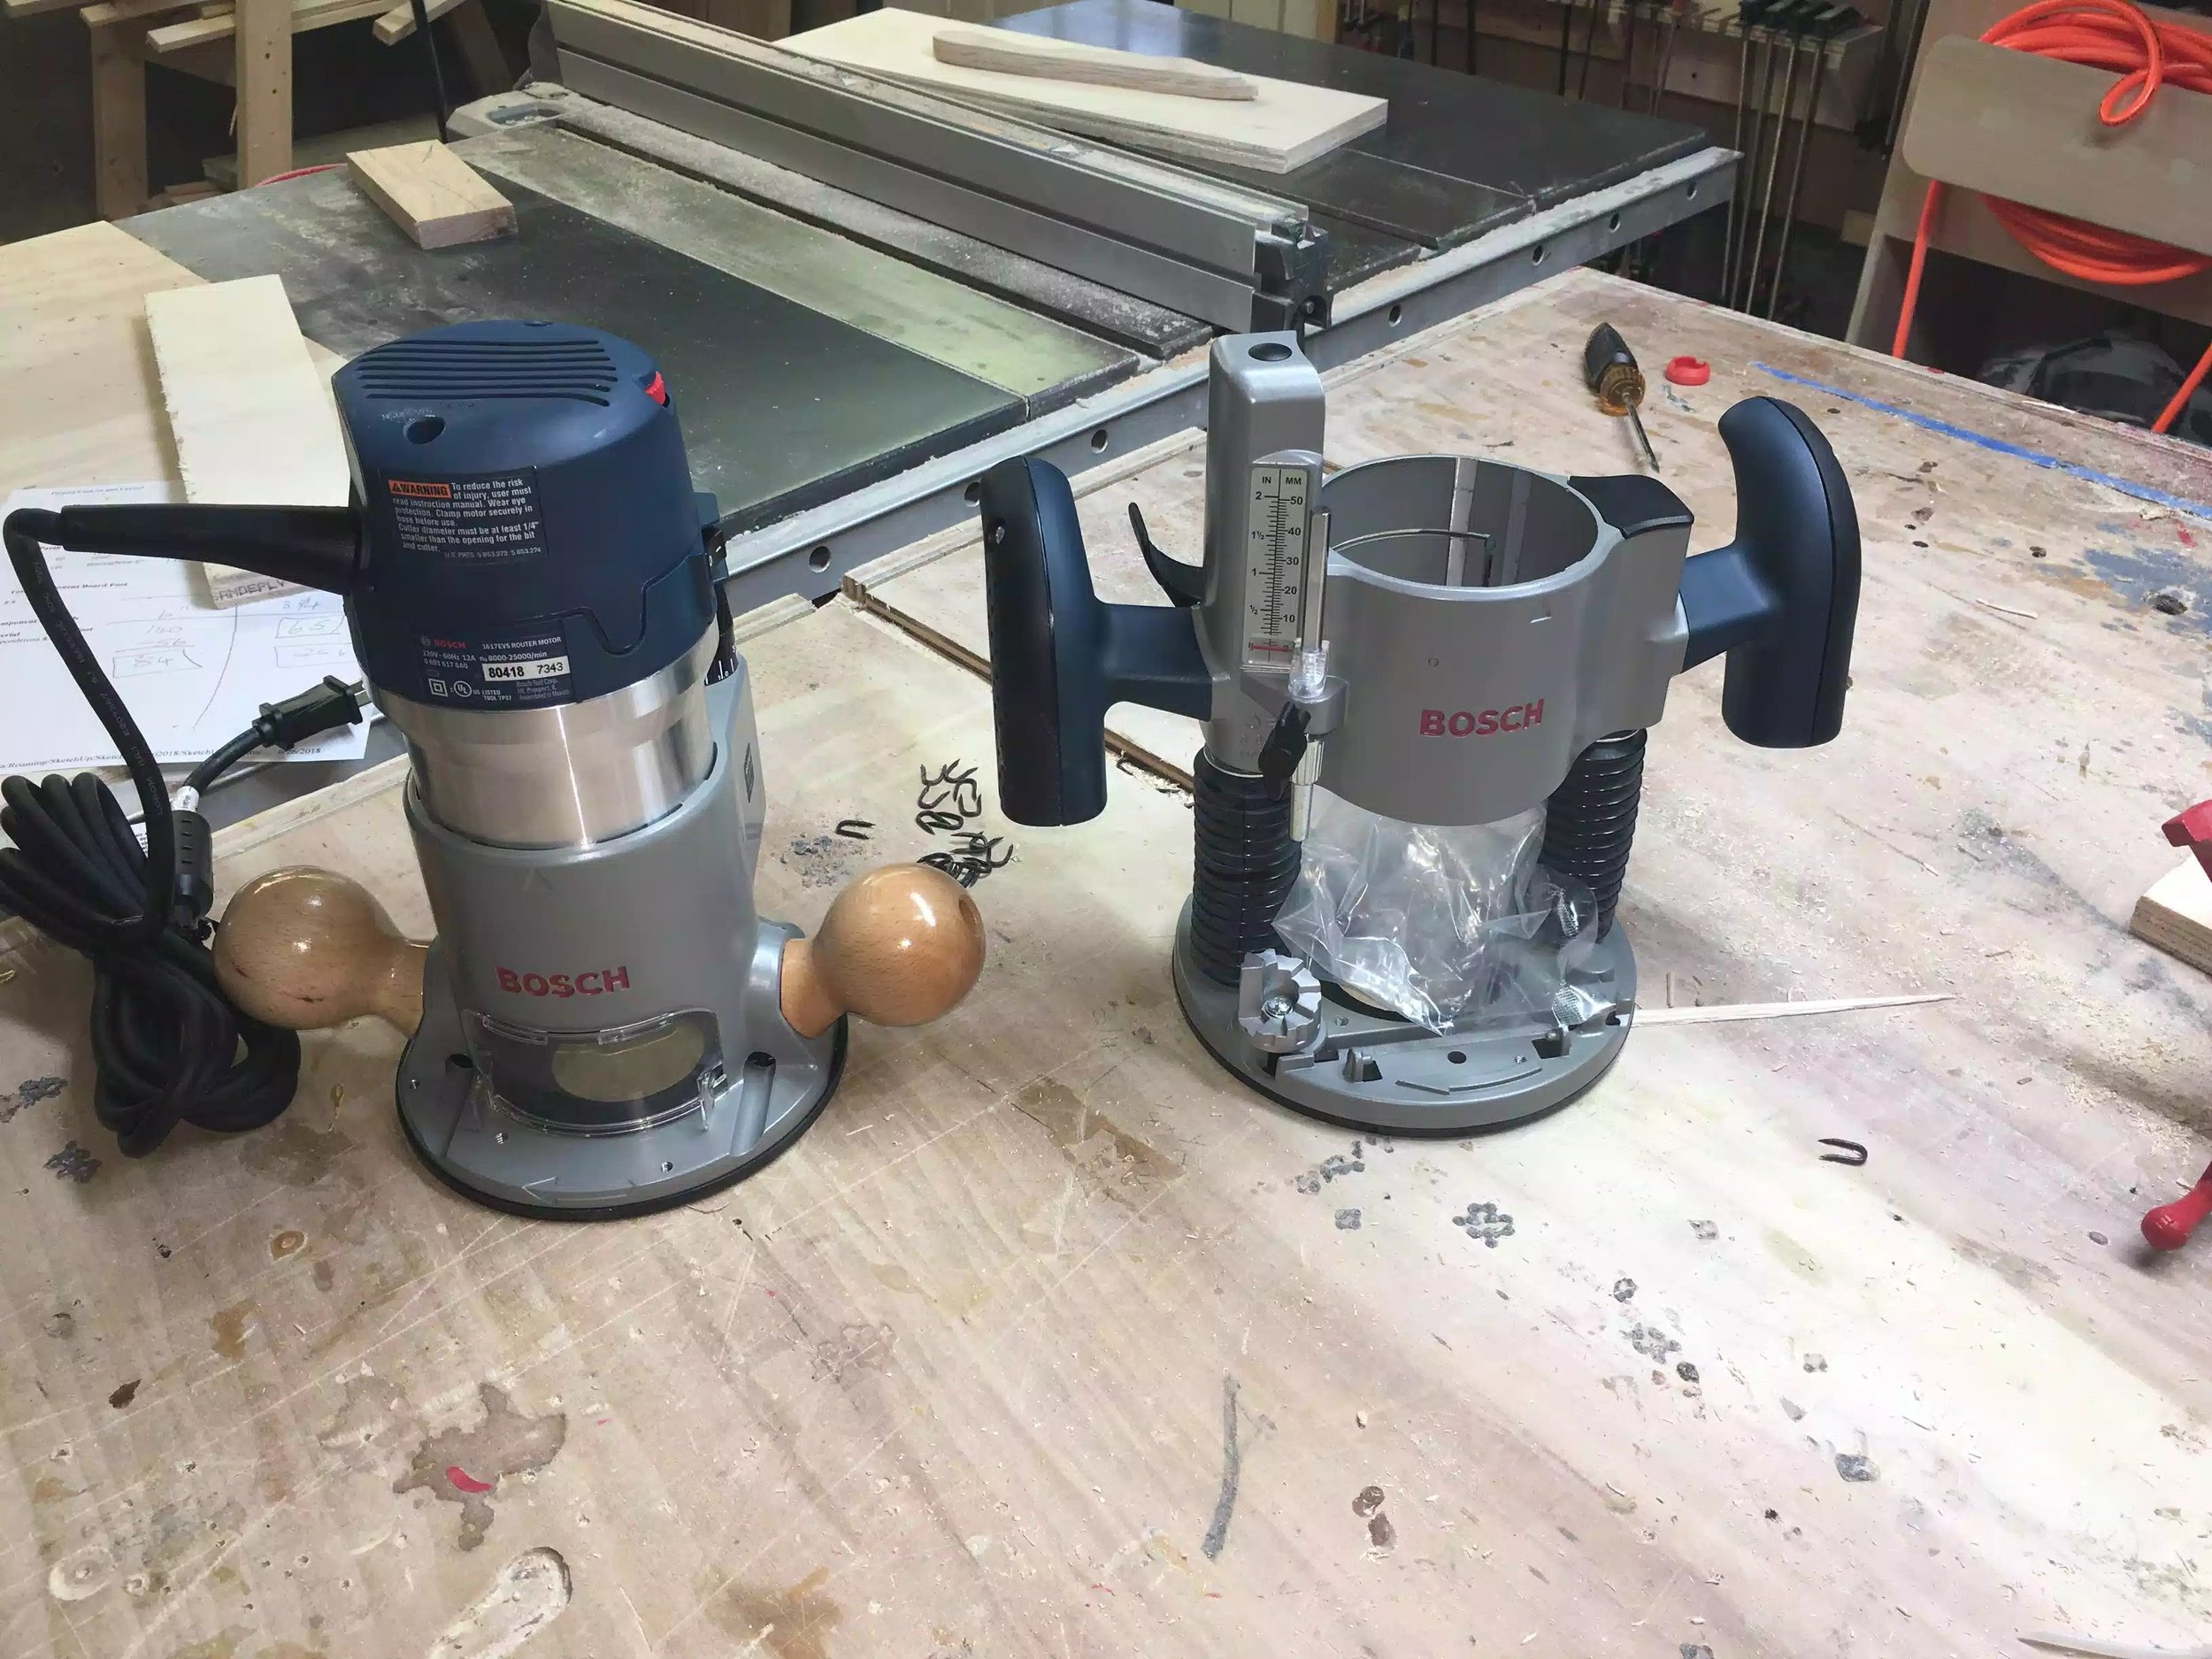 It has a very powerful 2 .25 HP motor, and I love the wooden handles, the kit came with a fixed and plunge base